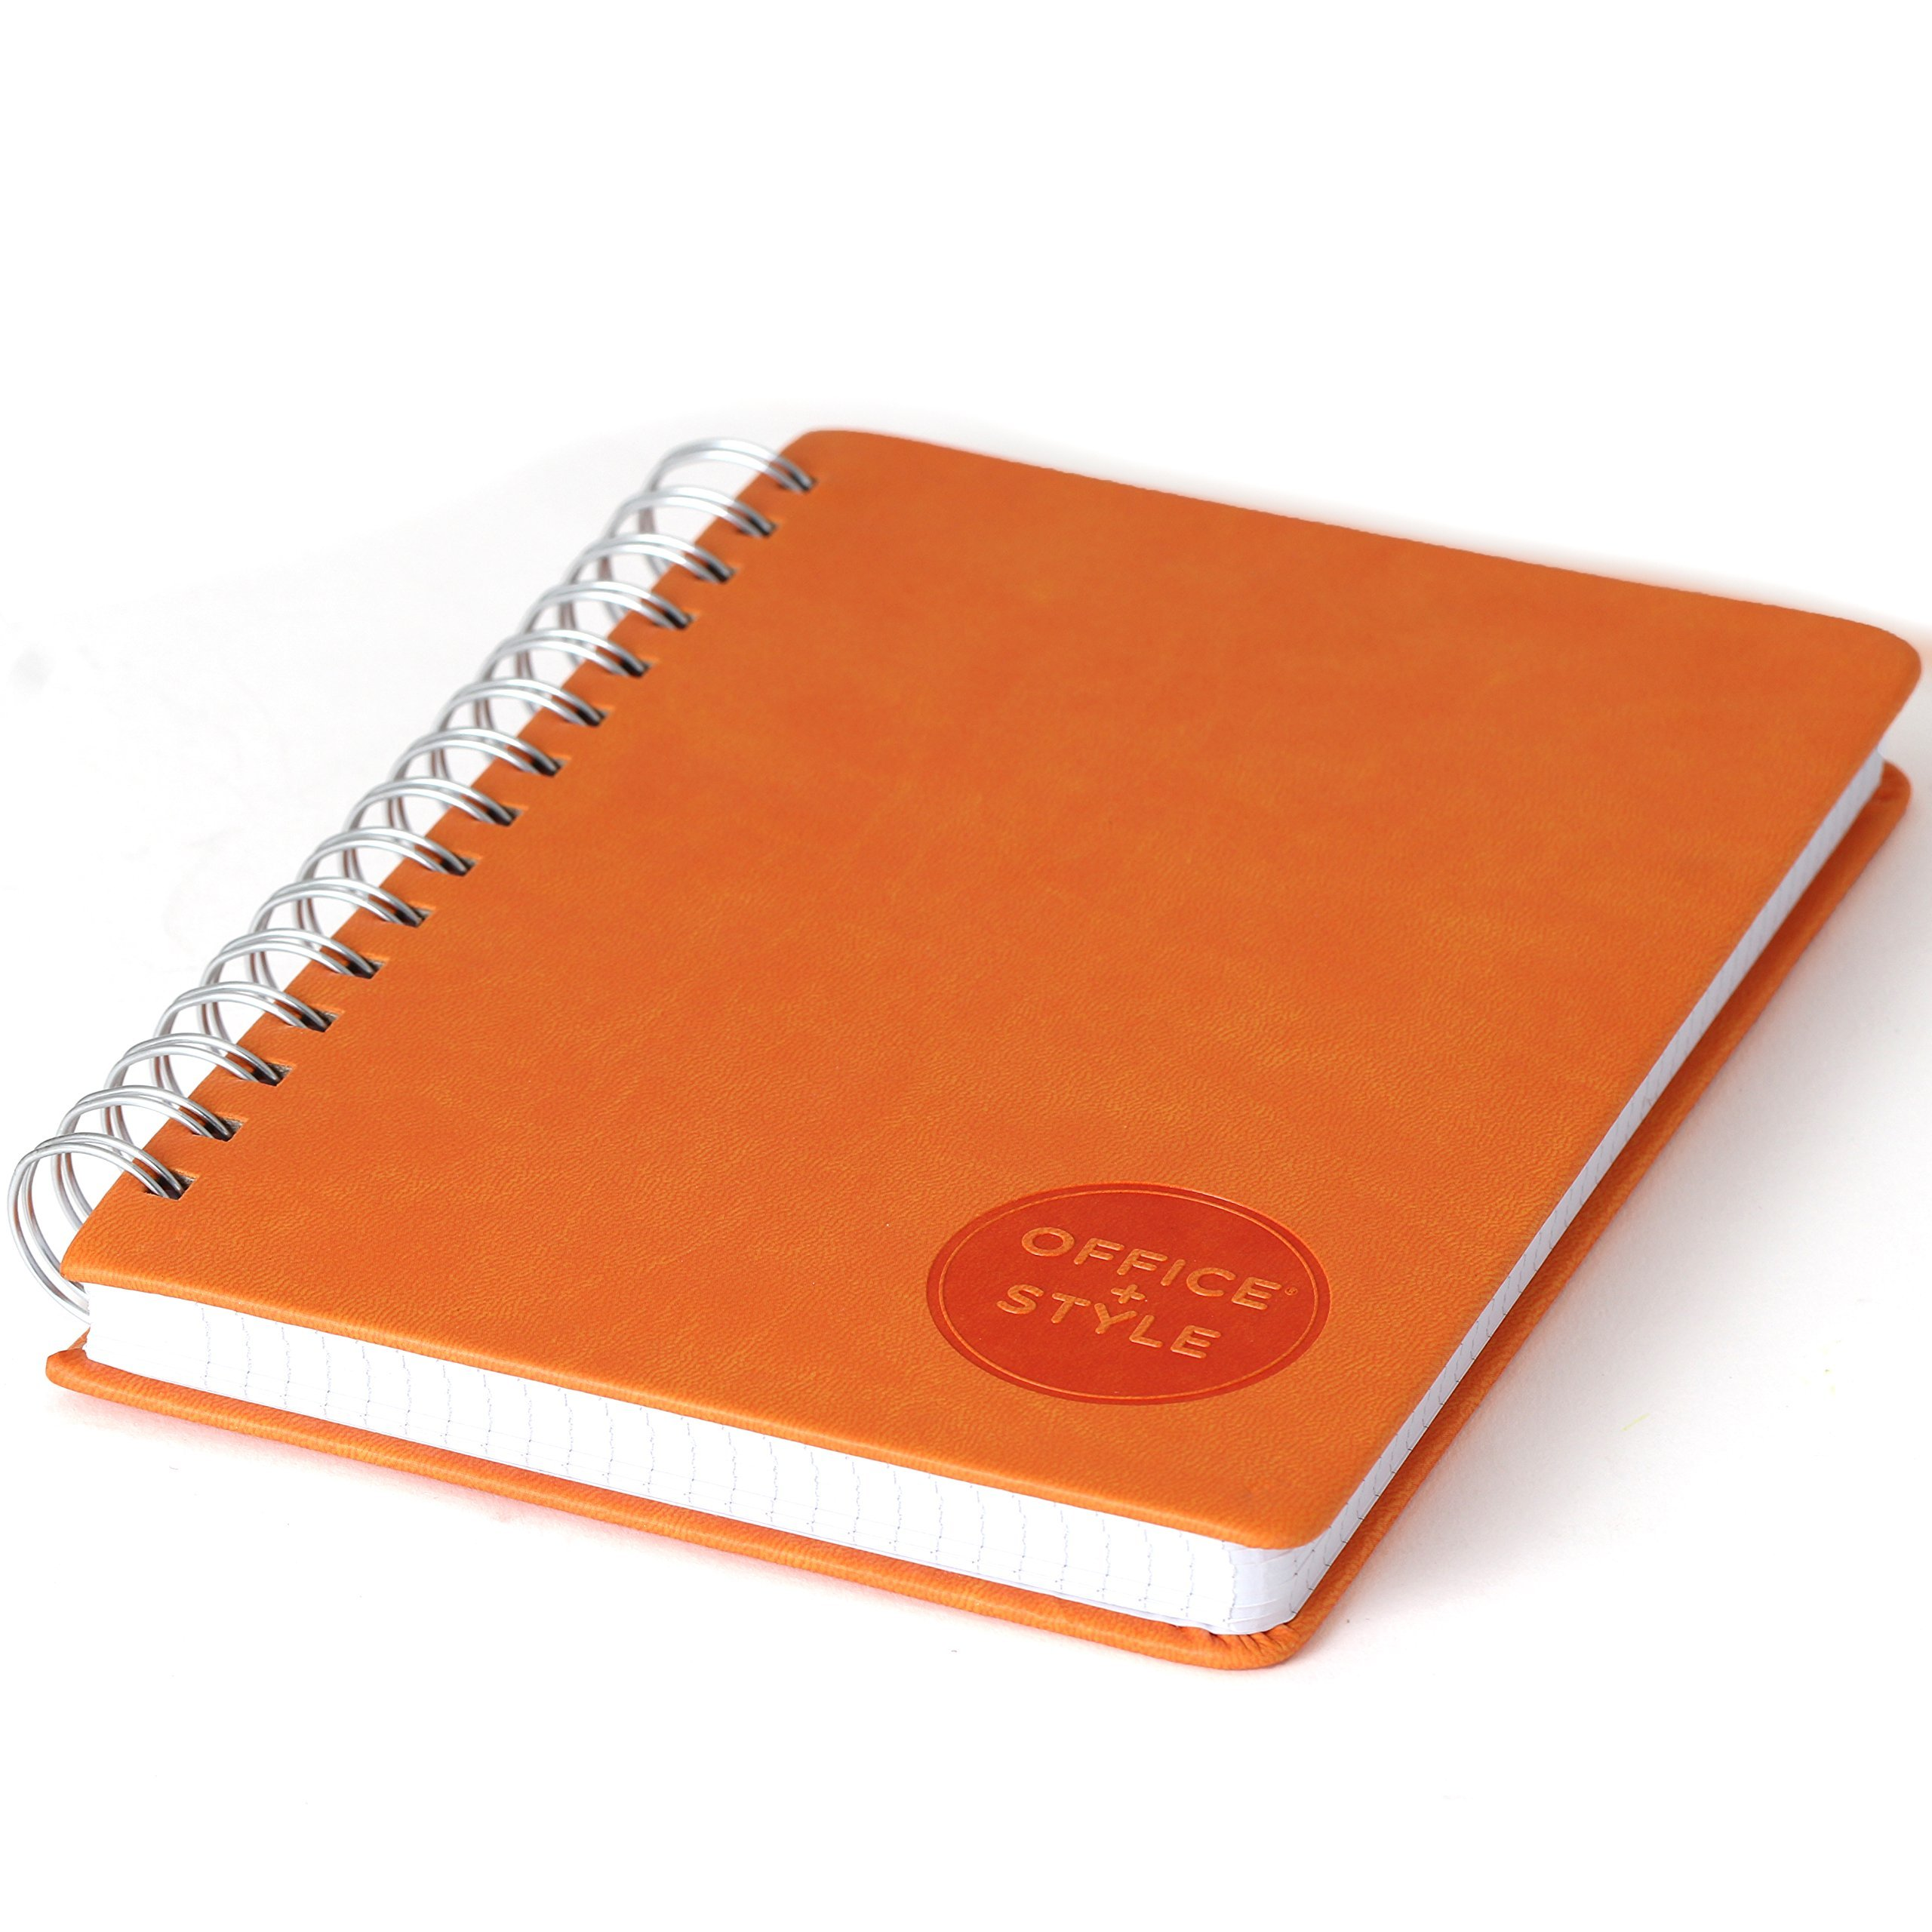 Office+Style PU Personal Graph Notebook with Double Spiral Binding, 96 Sheets, Orange (OS3-NBORG) by Office+Style (Image #3)